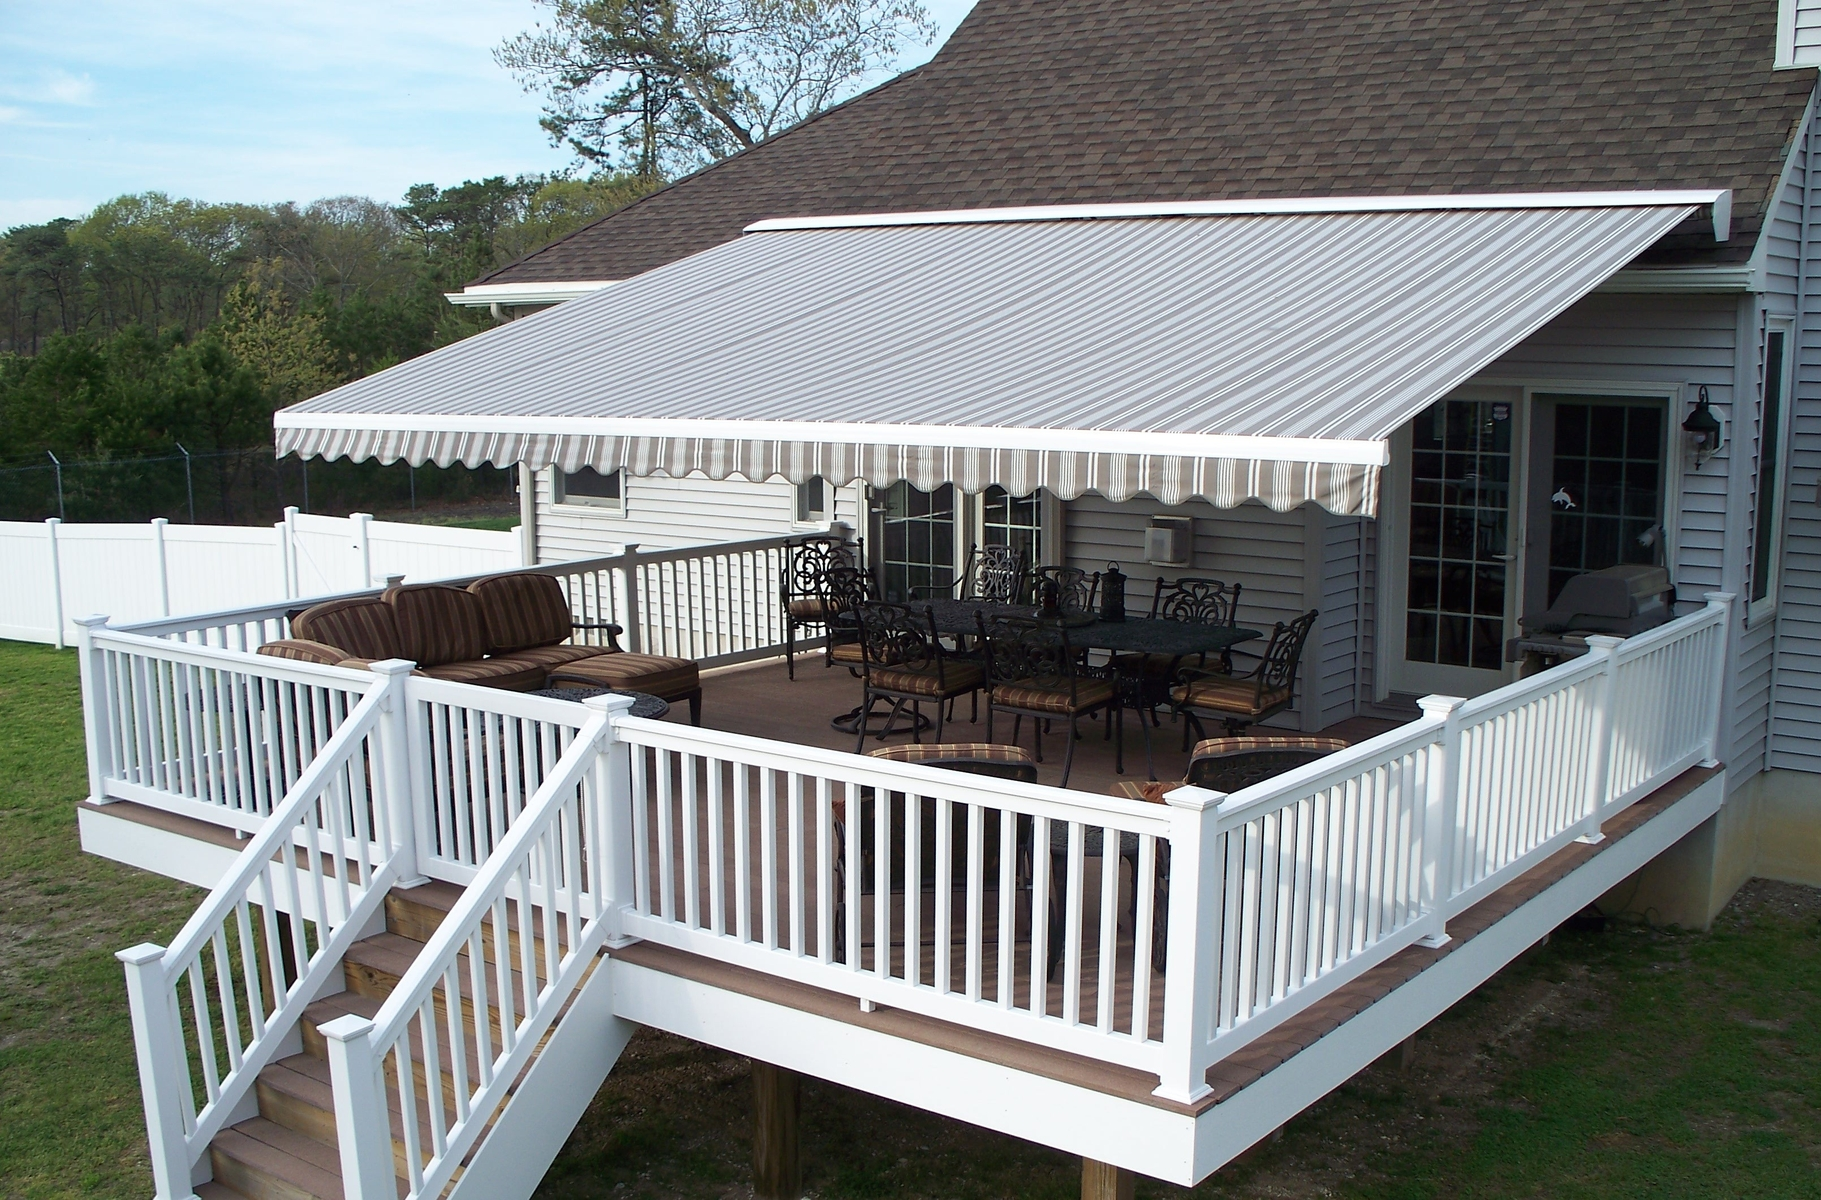 uk ideas creative plans canada info deck studio awnings calgary retractable diy cheap awning